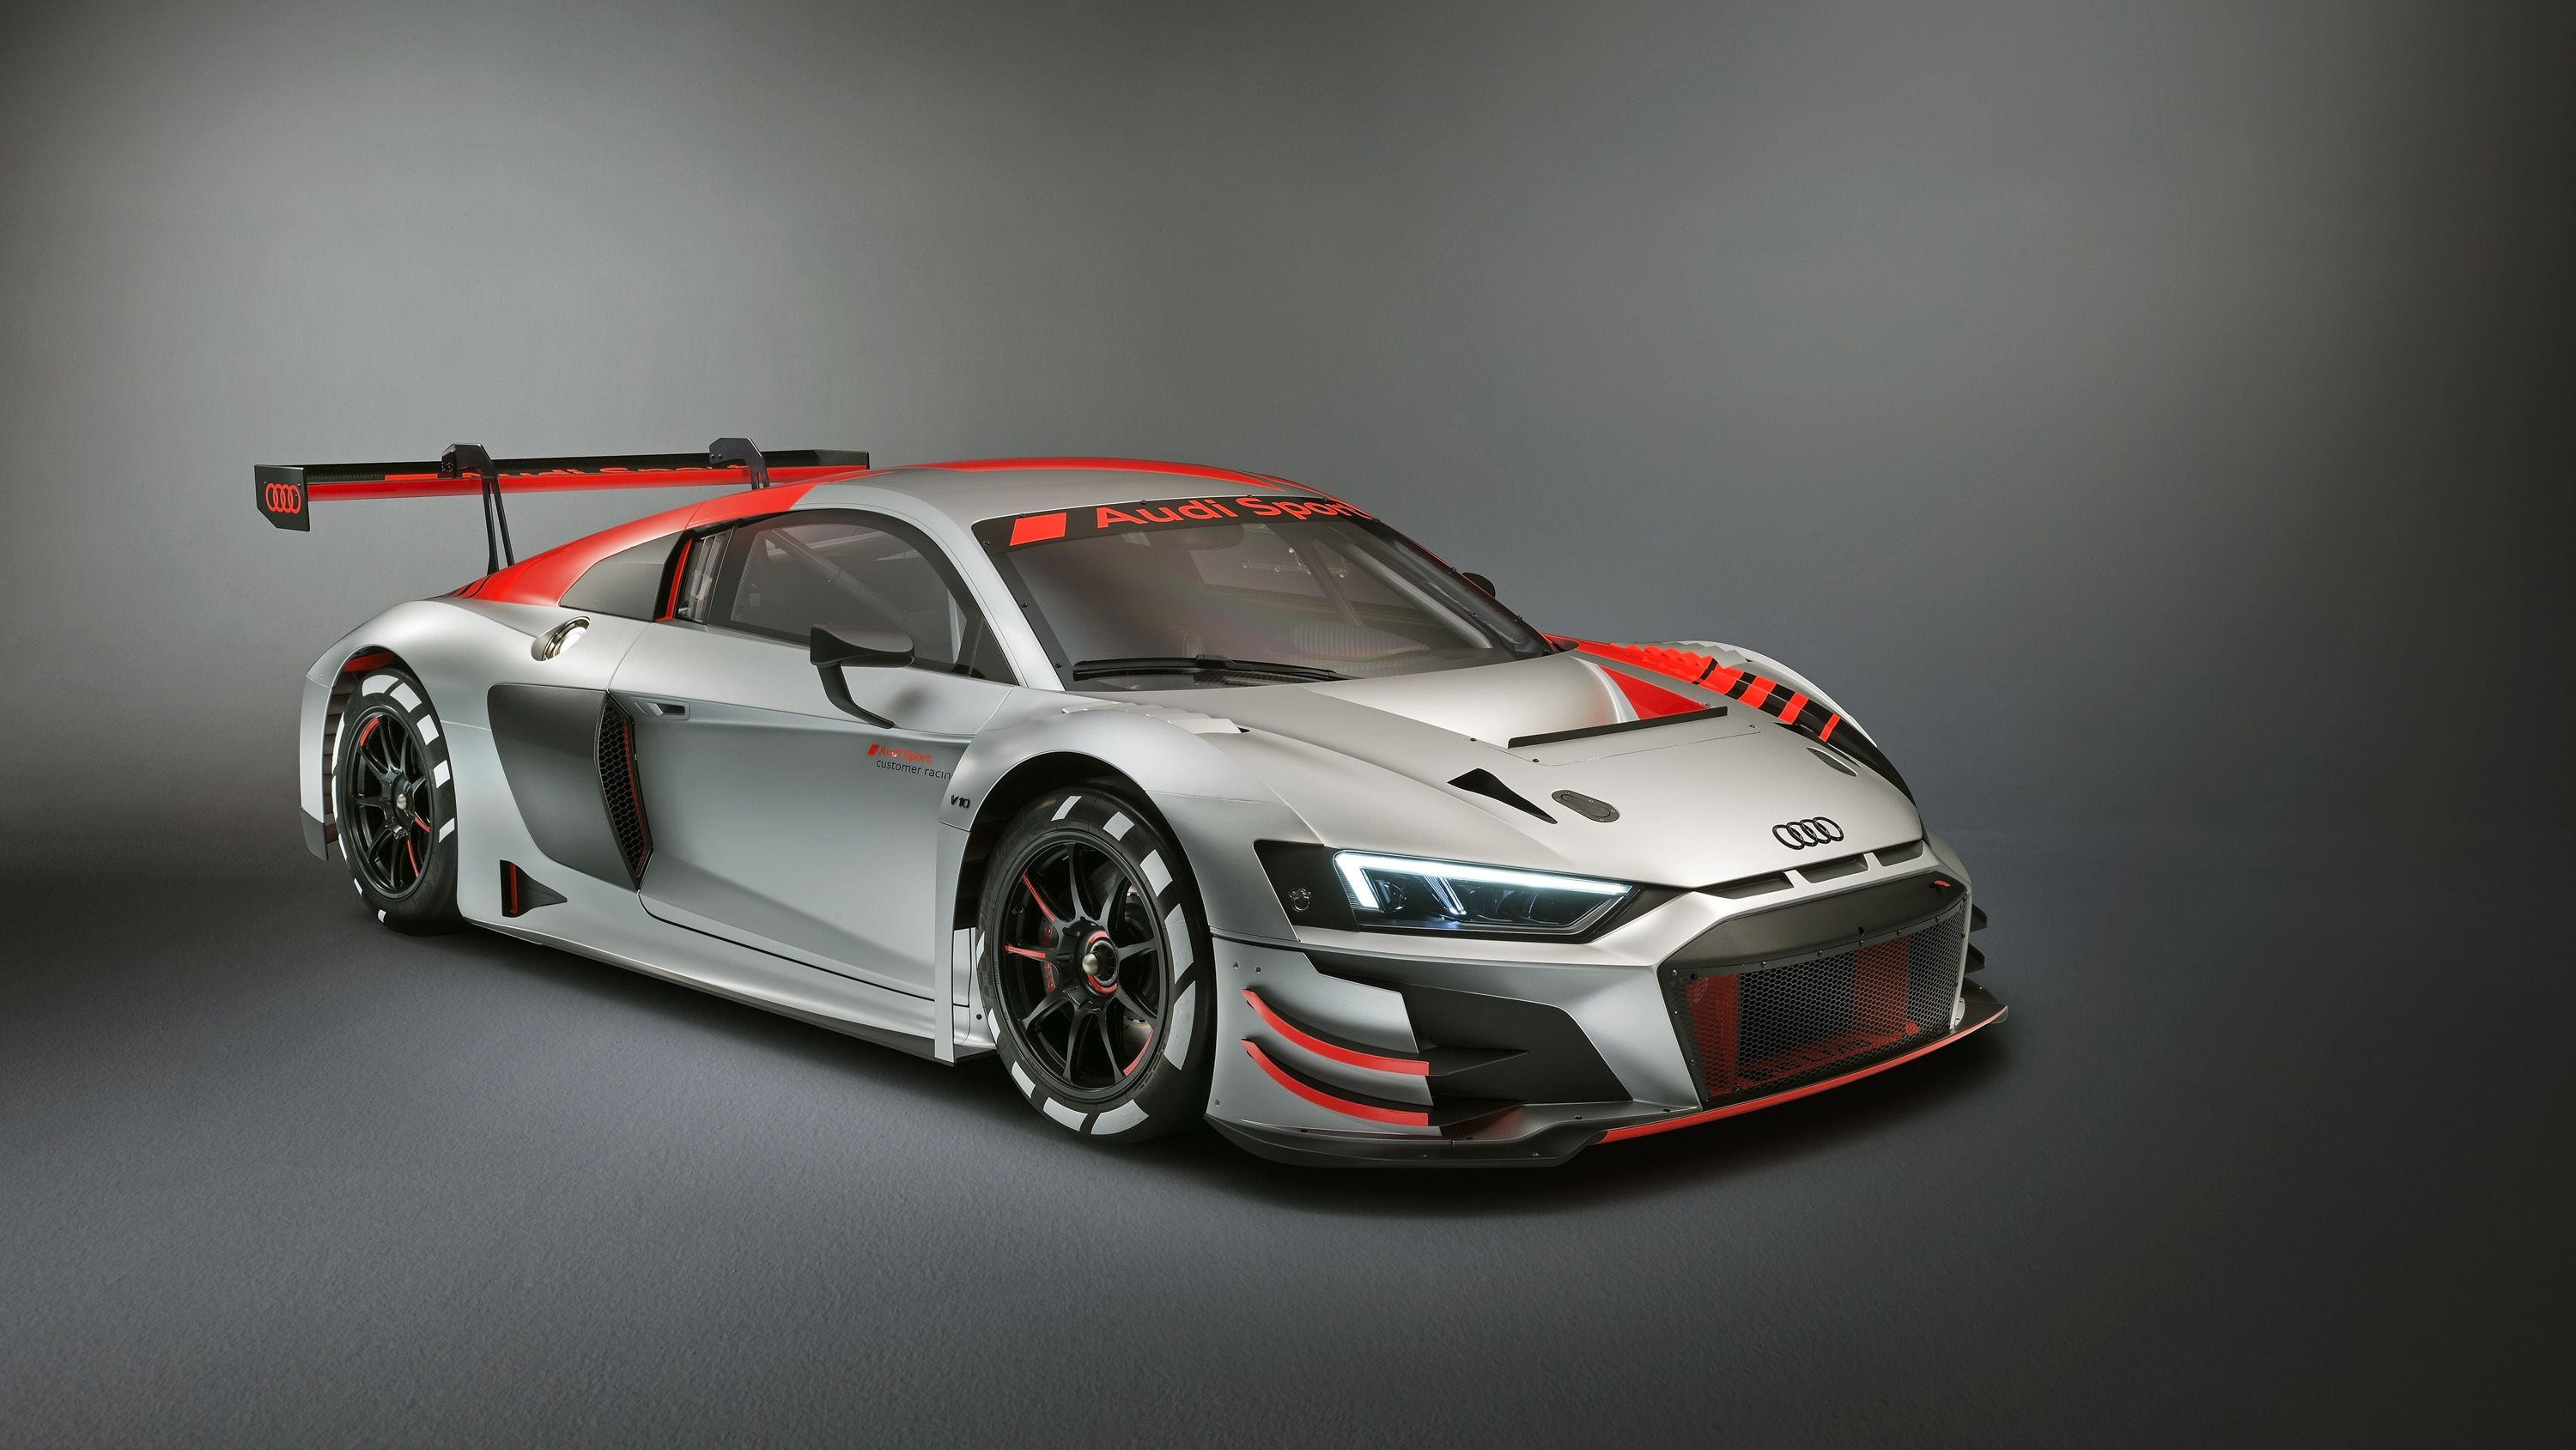 This New Audi R8 Lms Gt3 Serves As A Preview For The 2020 Audi R8 Road Car Top Speed Audi R8 Audi R8 Wallpaper New Audi R8